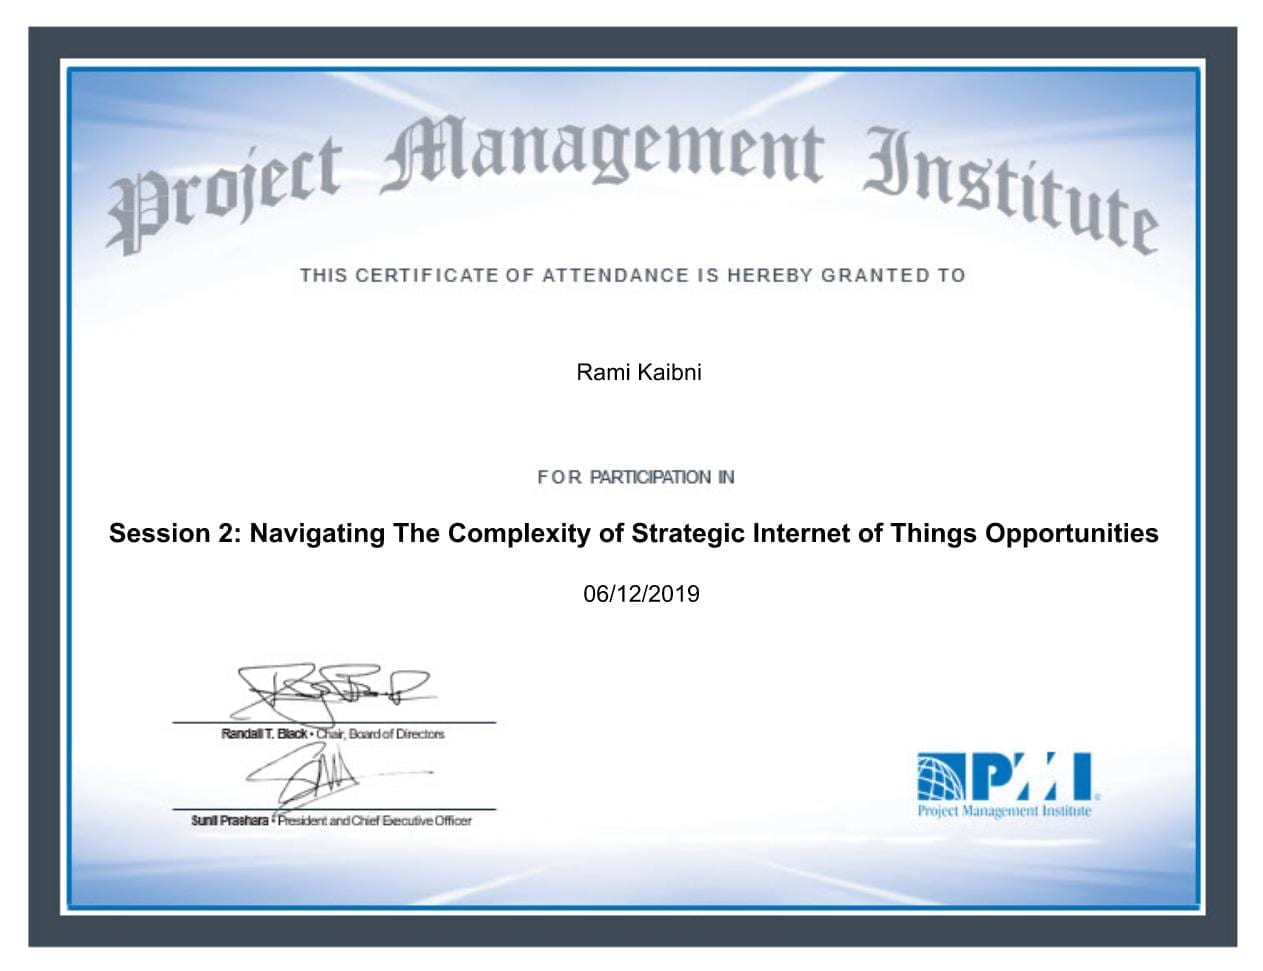 Navigating Complexity of Strategic IoT Opportunites